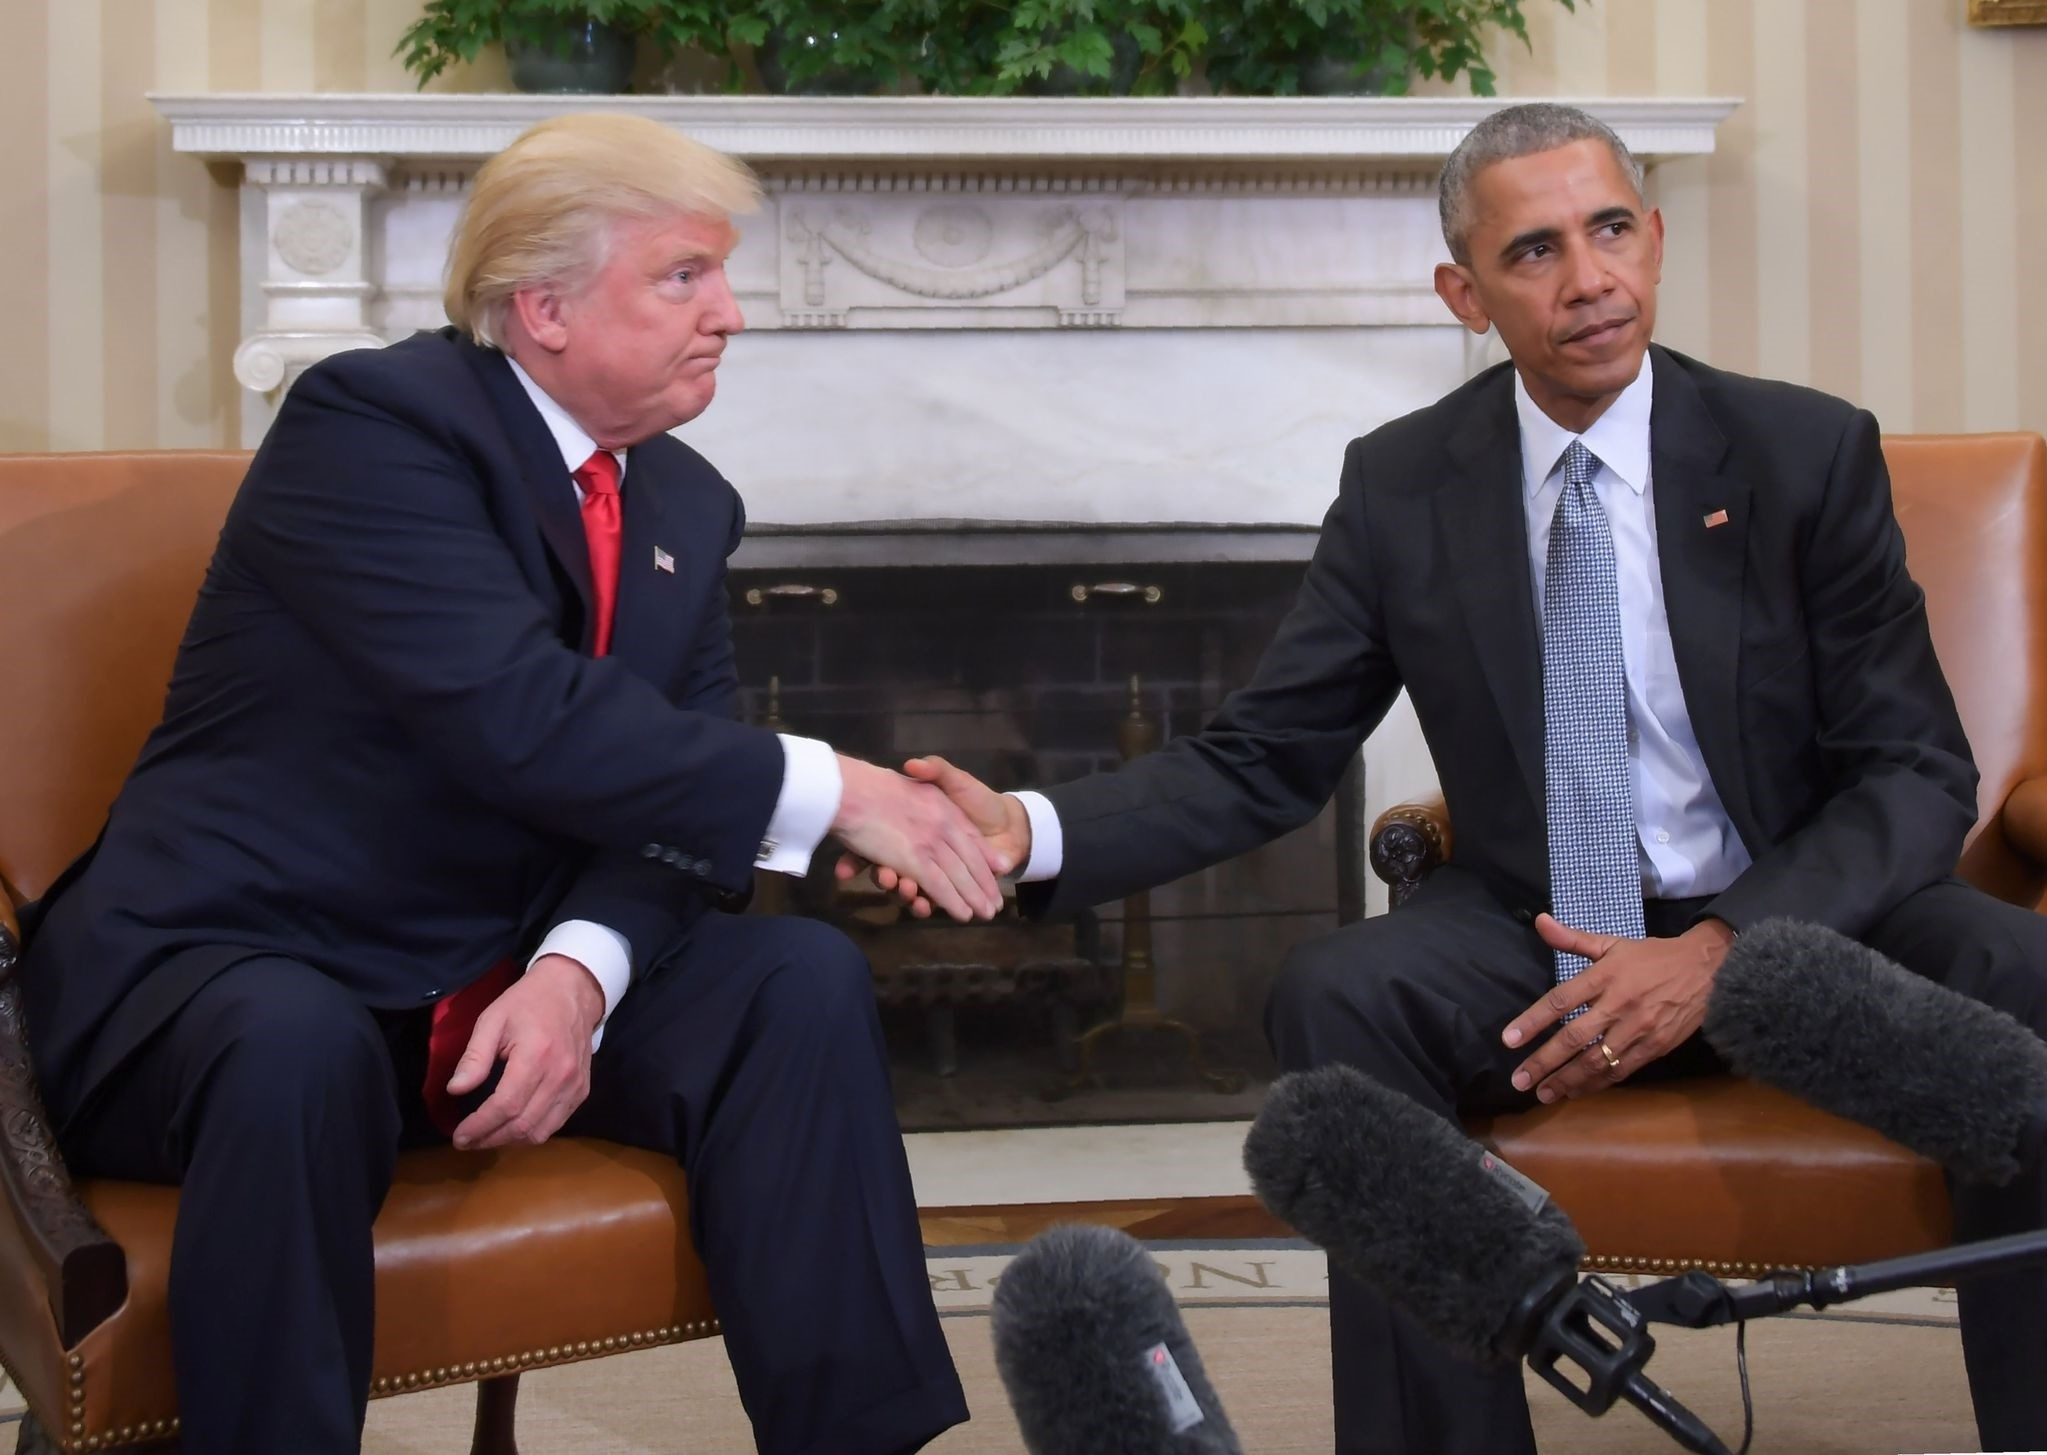 This file photo taken on November 10, 2016 shows US President Barack Obama and President-elect Donald Trump shake hands during a transition planning meeting. (AFP Photo)